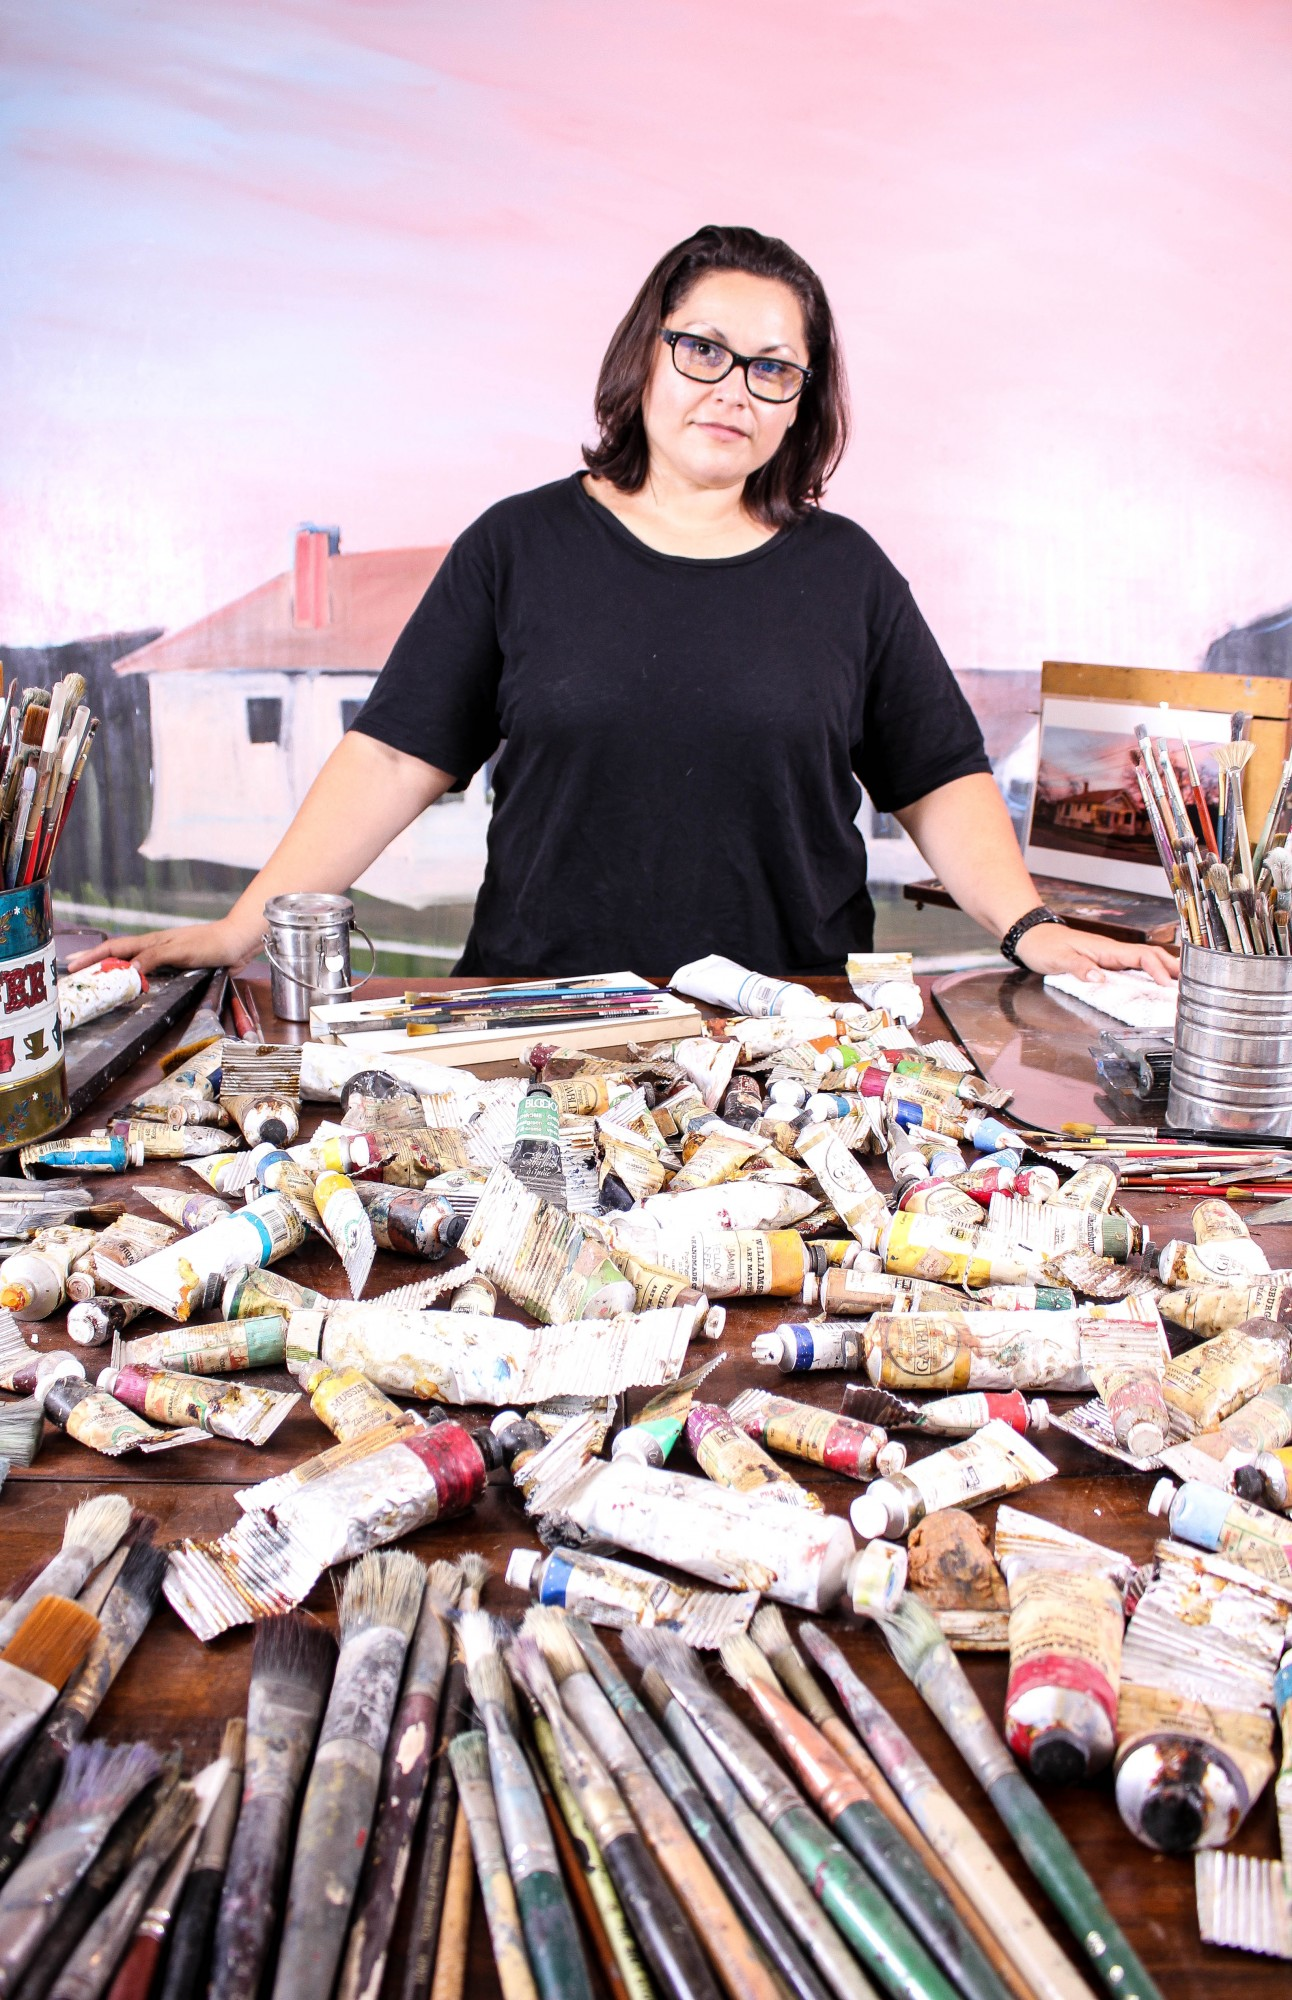 Ana Fernandez photographed in her studio by Julián P. Ledezma